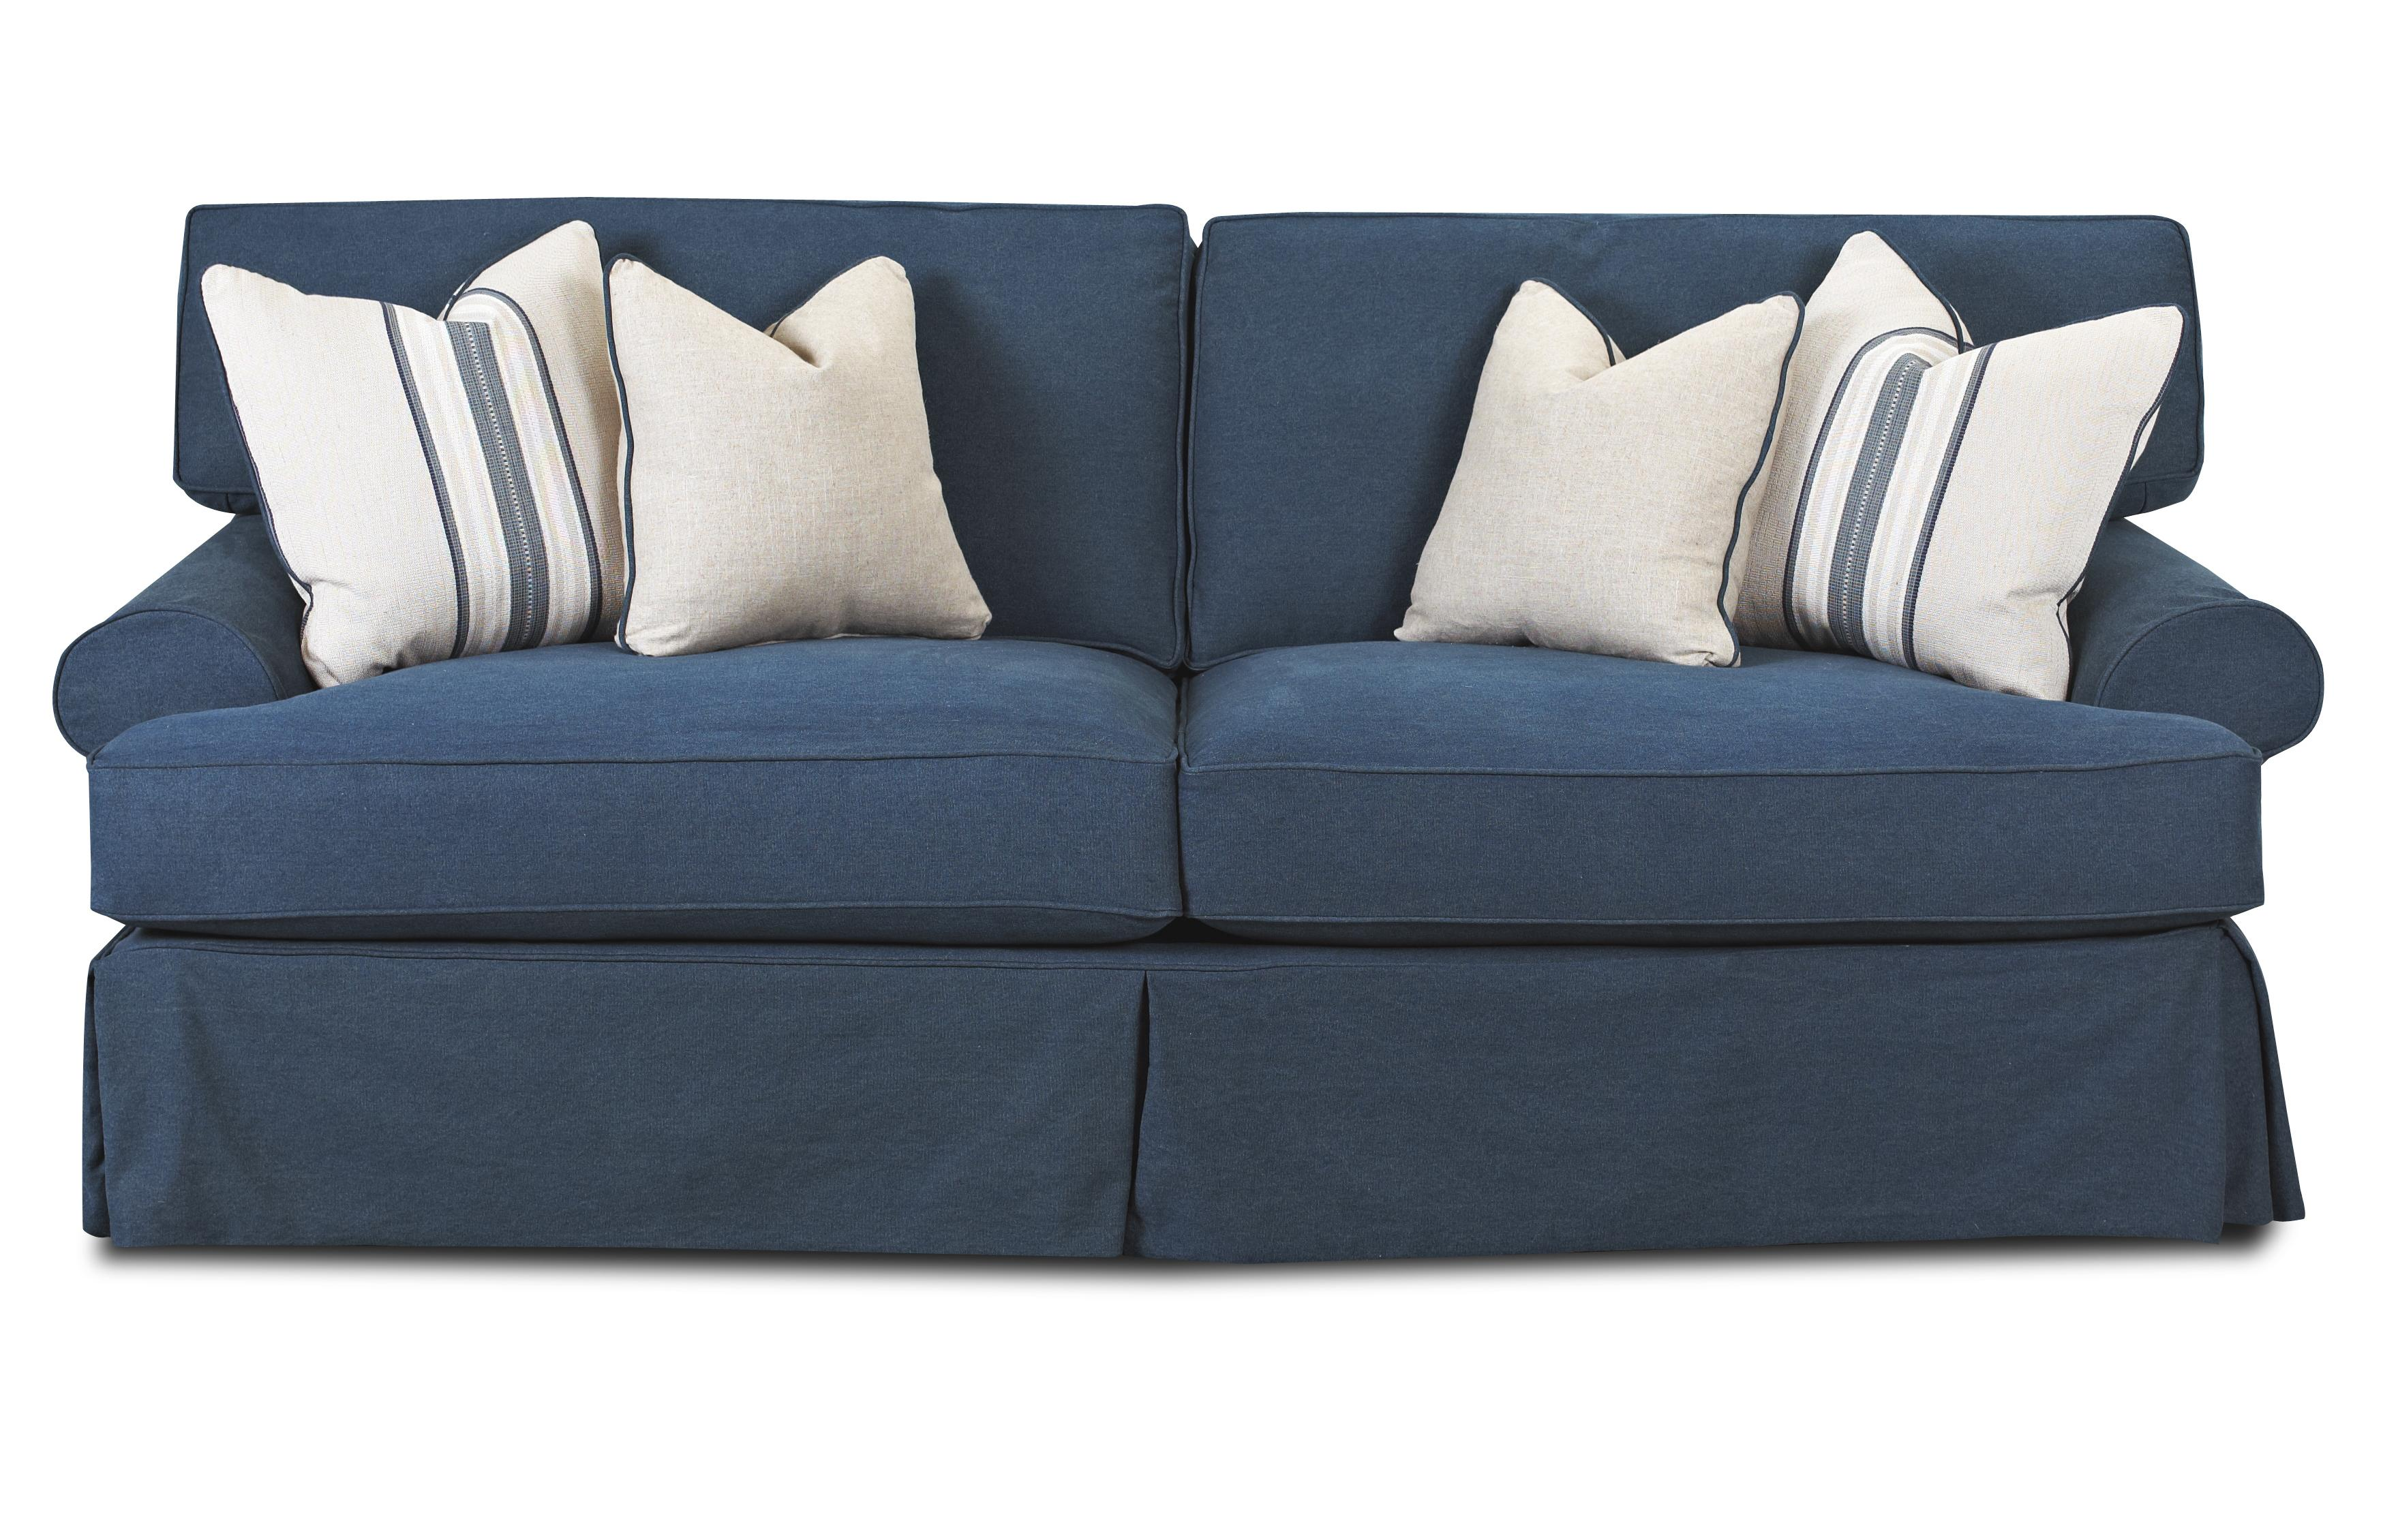 sofa with blend down cushions by klaussner wolf and. Black Bedroom Furniture Sets. Home Design Ideas